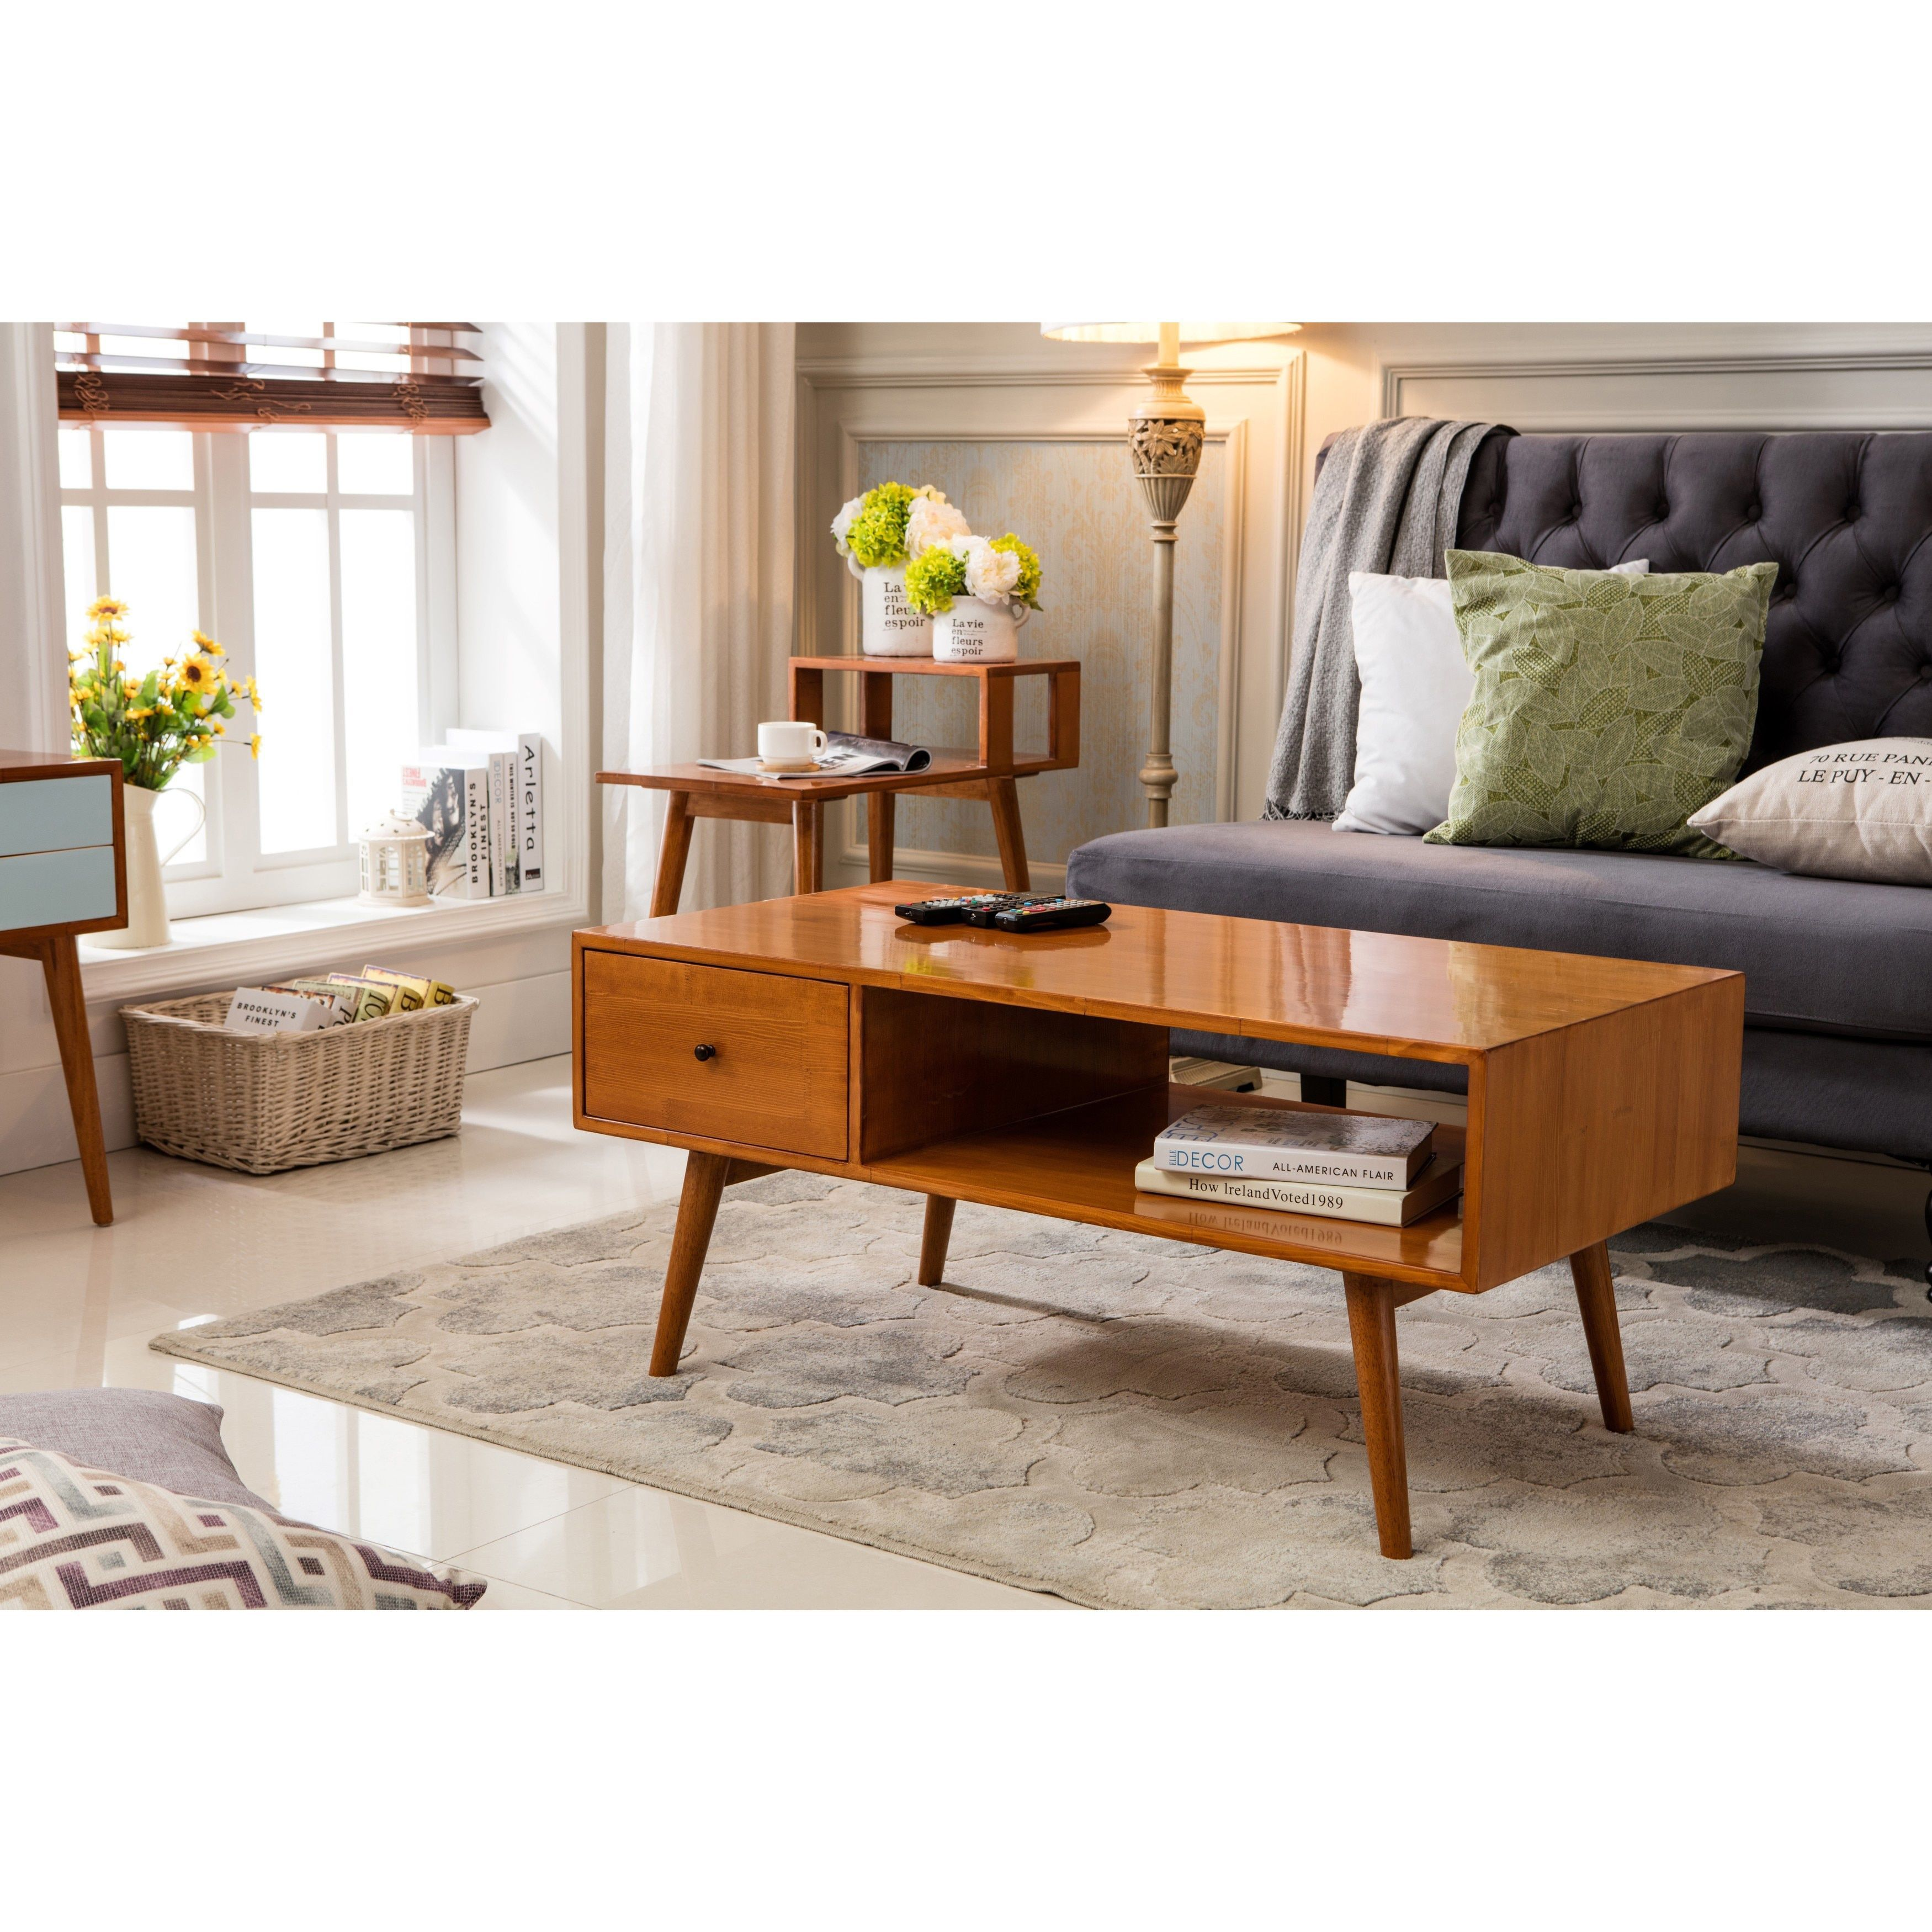 Porthos Home Bowie Mid-Century Coffee Table (Blue) In 2019